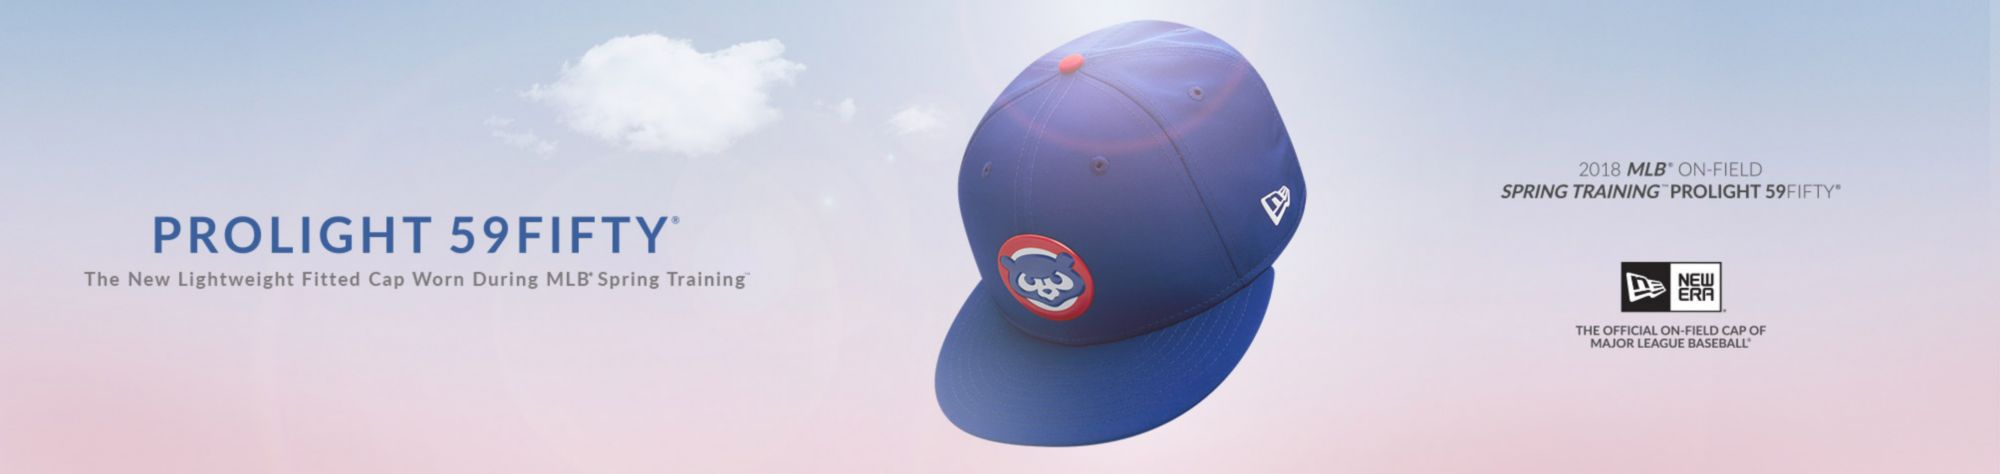 PROLIGHT 59FIFTY - The new lightweight fitted cap worn during MLB spring training - Chicago Cubs - Shop Now